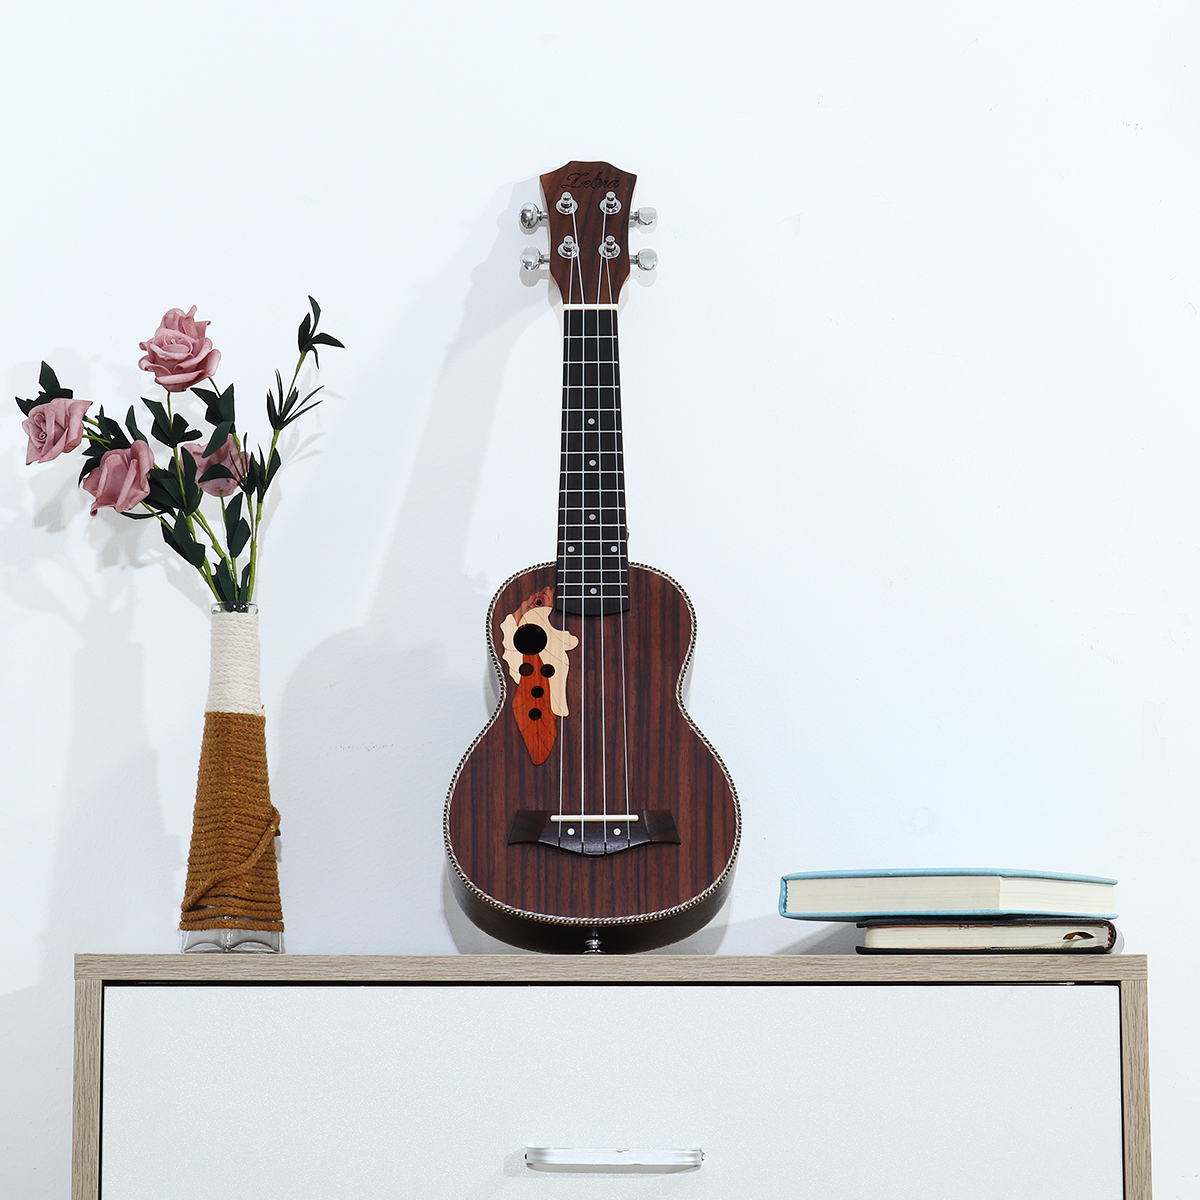 21 Inch Four Strings Musical Instrument Ukulele Guitar With Grape Shape Holes Kids Guitar Toys Student Beginner School Play